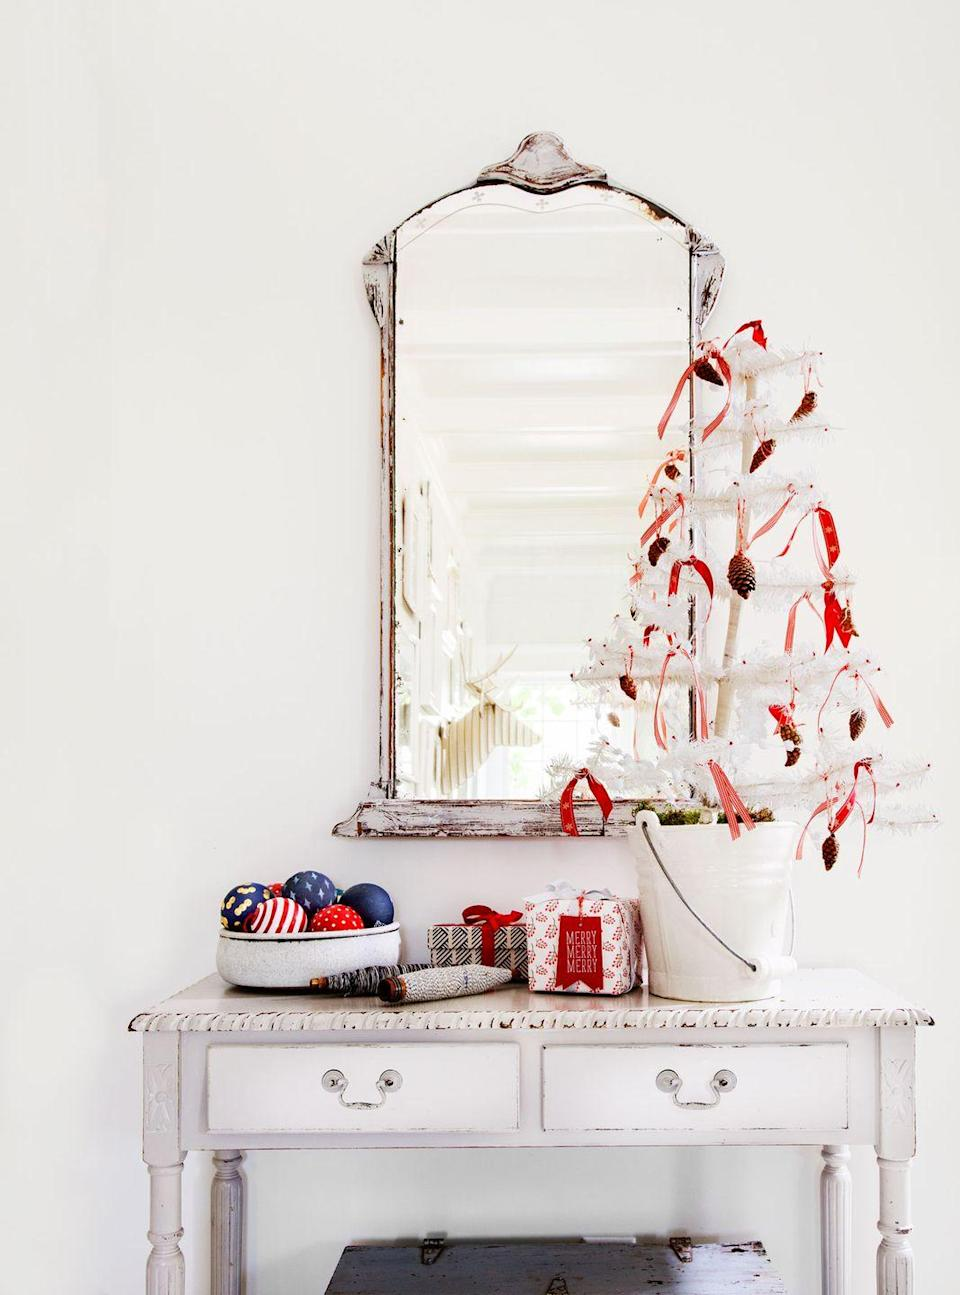 """<p>A petite <a href=""""https://www.countryliving.com/home-design/news/a45994/white-christmas-tree-decorating-ideas/"""" rel=""""nofollow noopener"""" target=""""_blank"""" data-ylk=""""slk:white tree"""" class=""""link rapid-noclick-resp"""">white tree</a> covered in red ribbons and pinecones makes for a simple but merry welcome in this entryway. </p><p><a class=""""link rapid-noclick-resp"""" href=""""https://www.amazon.com/Small-Artificial-Christmas-Tree-Pre-lit/dp/B077LHZFFS/?tag=syn-yahoo-20&ascsubtag=%5Bartid%7C10050.g.1247%5Bsrc%7Cyahoo-us"""" rel=""""nofollow noopener"""" target=""""_blank"""" data-ylk=""""slk:SHOP WHITE TREES"""">SHOP WHITE TREES</a></p>"""